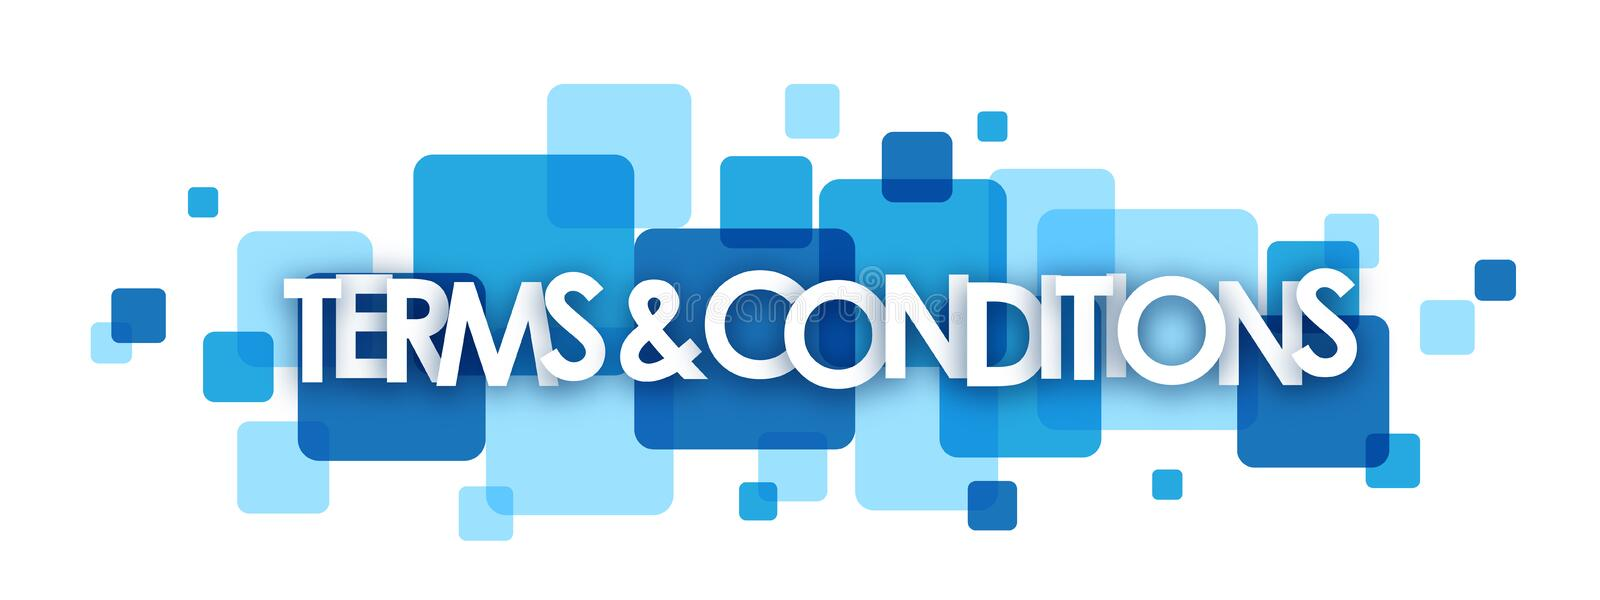 TERMS & CONDITIONS blue overlapping squares banner. Vector stock illustration